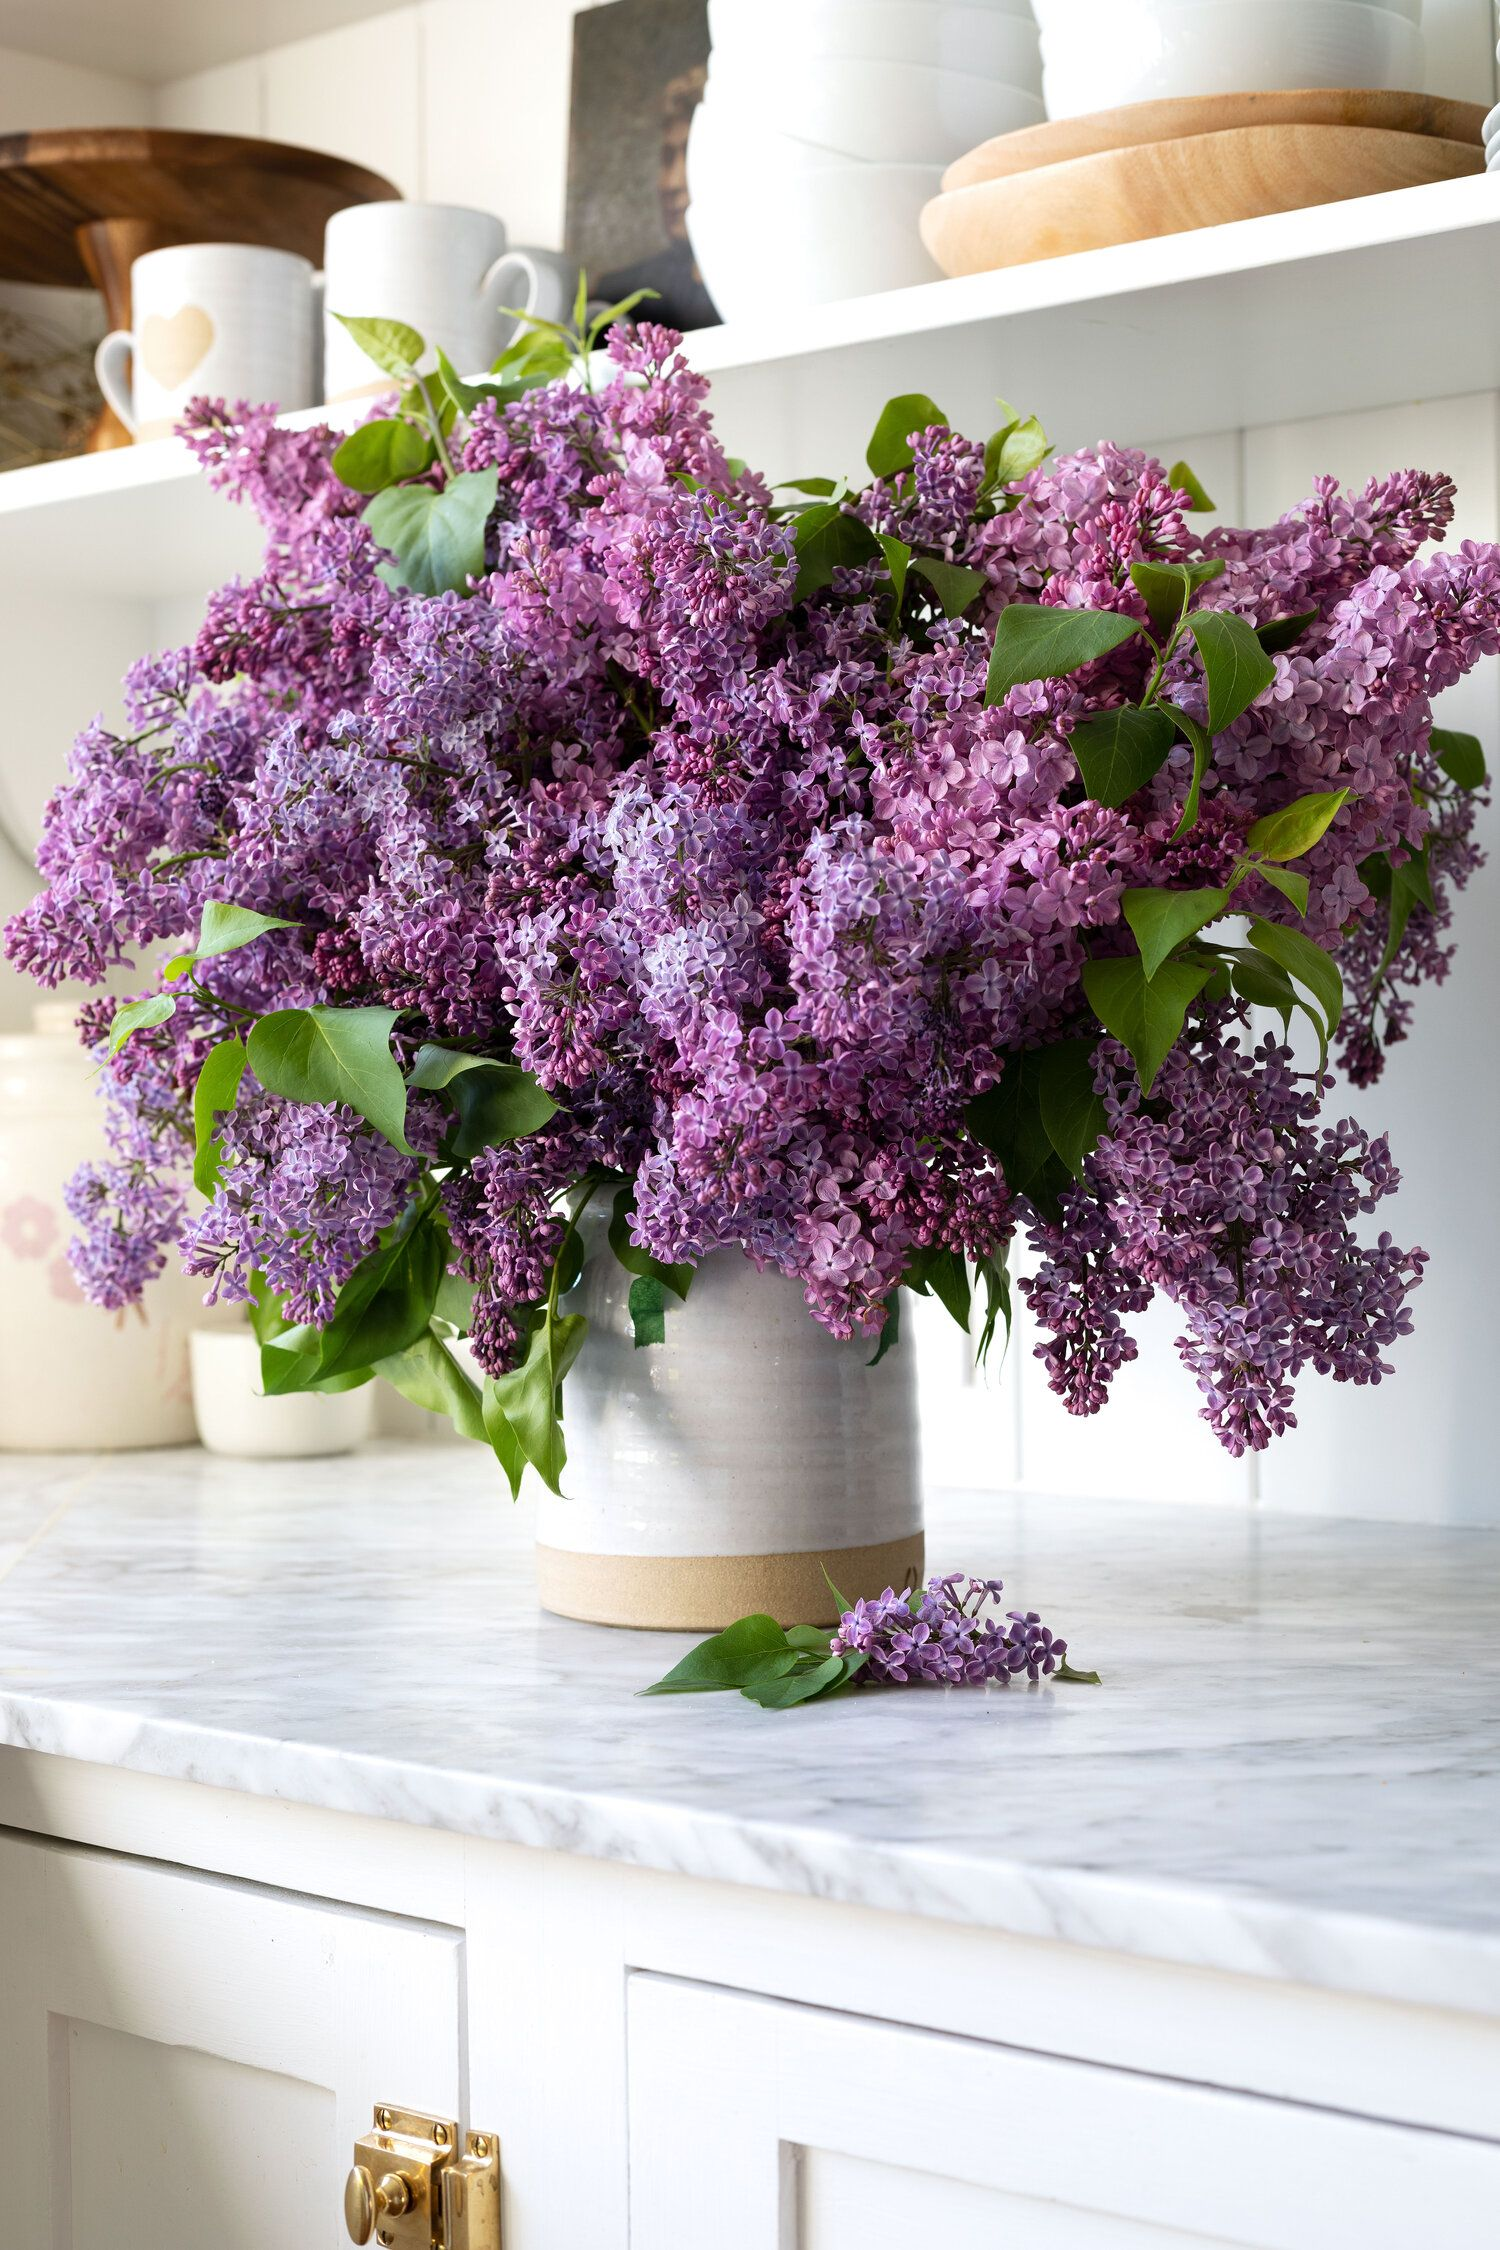 How To Arrange An Overflowing Bouquet Of Lilacs Keep Them From Wilting The Grit And Polish In 2020 Lilac Bouquet Beautiful Flower Arrangements Flower Arrangements